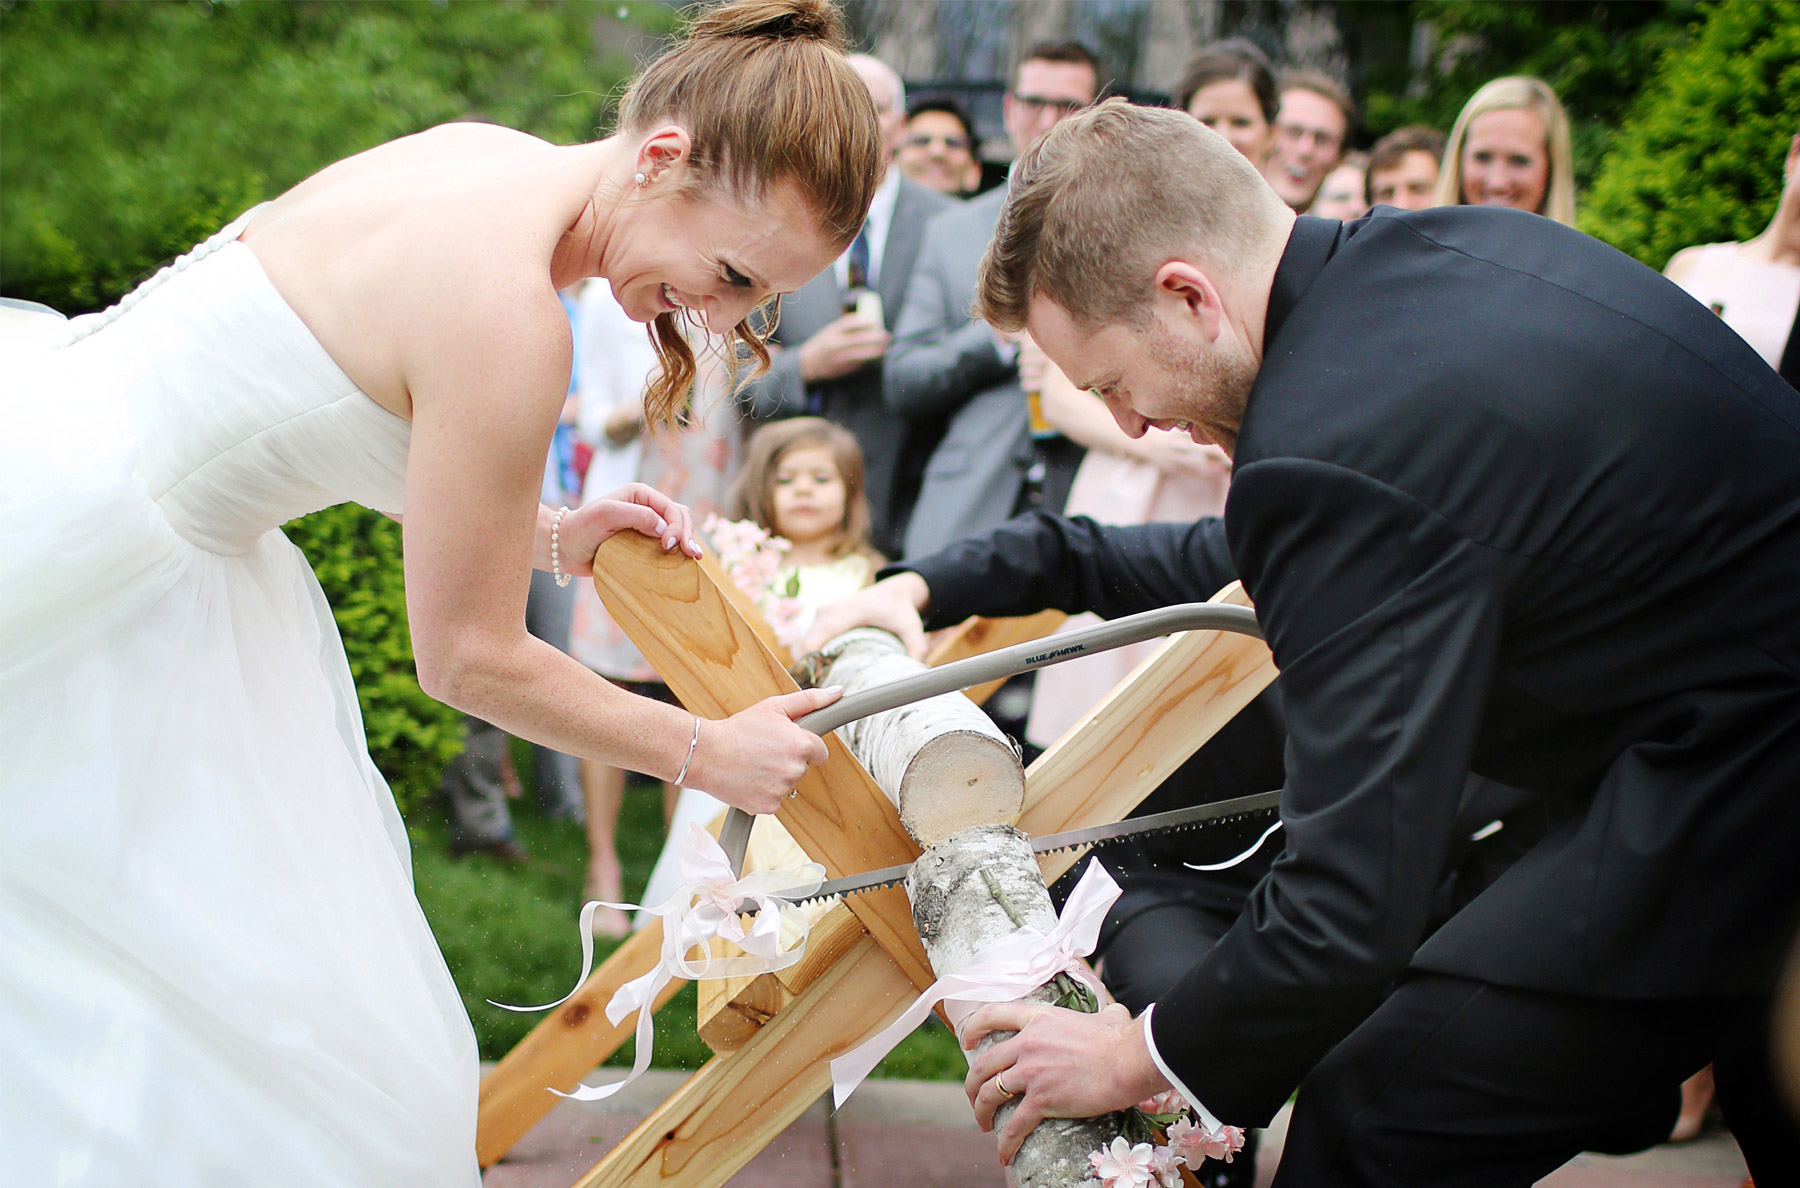 15-Minneapolis-Minnesota-Wedding-Photography-by-Vick-Photography--Van-Dusen-Mansion-Outdoor.jpg